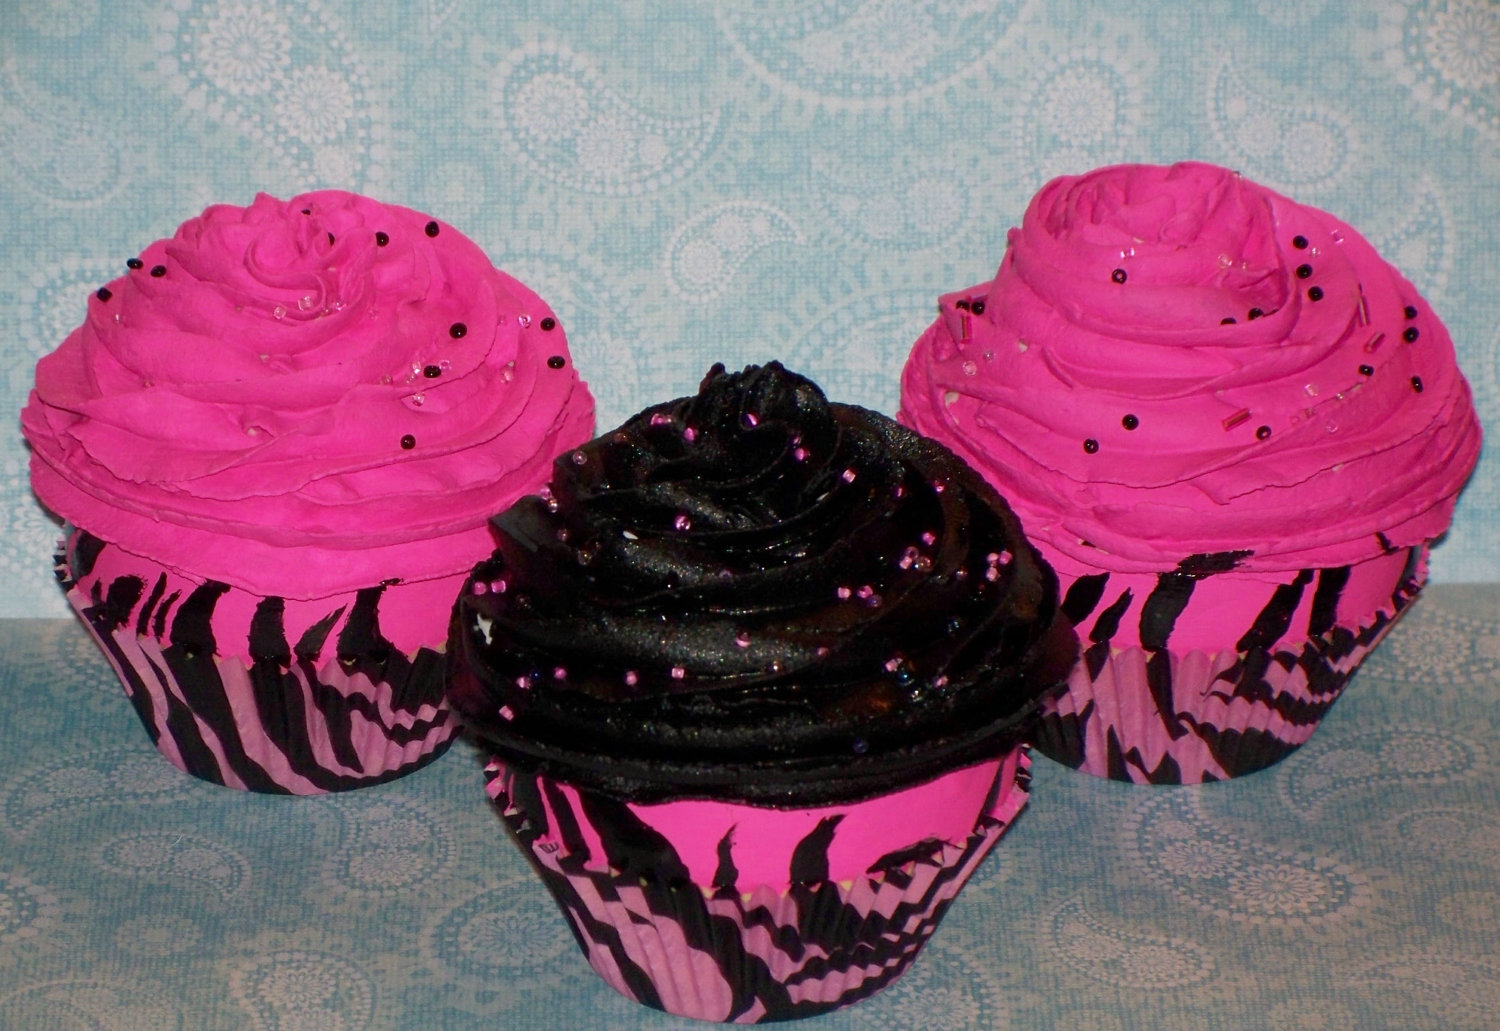 11 Pink And Black Zebra Cupcakes Photo Pink Zebra Cupcakes Pink